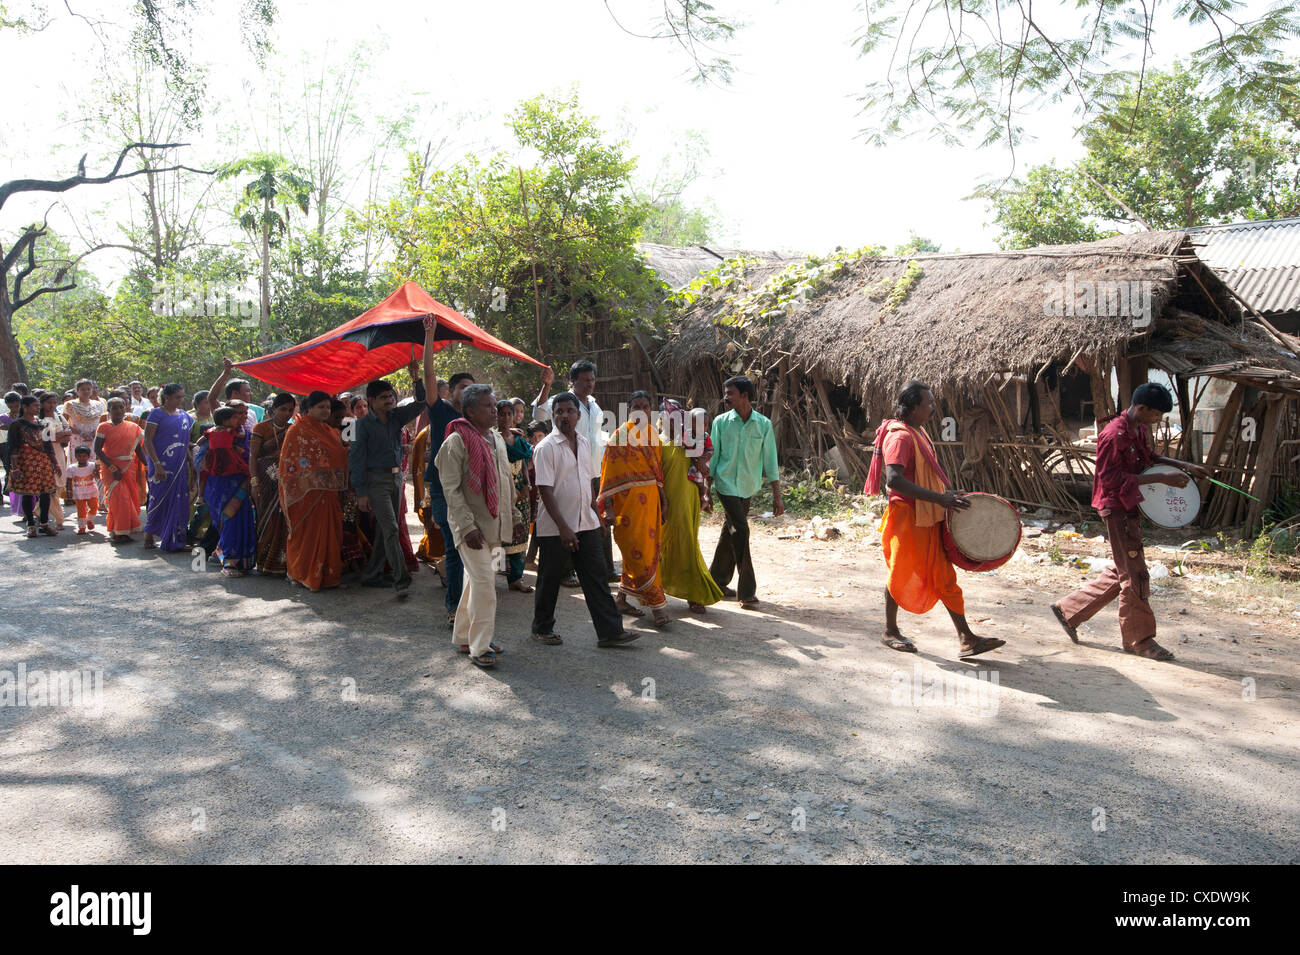 Drummers leading village bride under red canopy to her marriage ceremony in a procession with family and villagers, - Stock Image